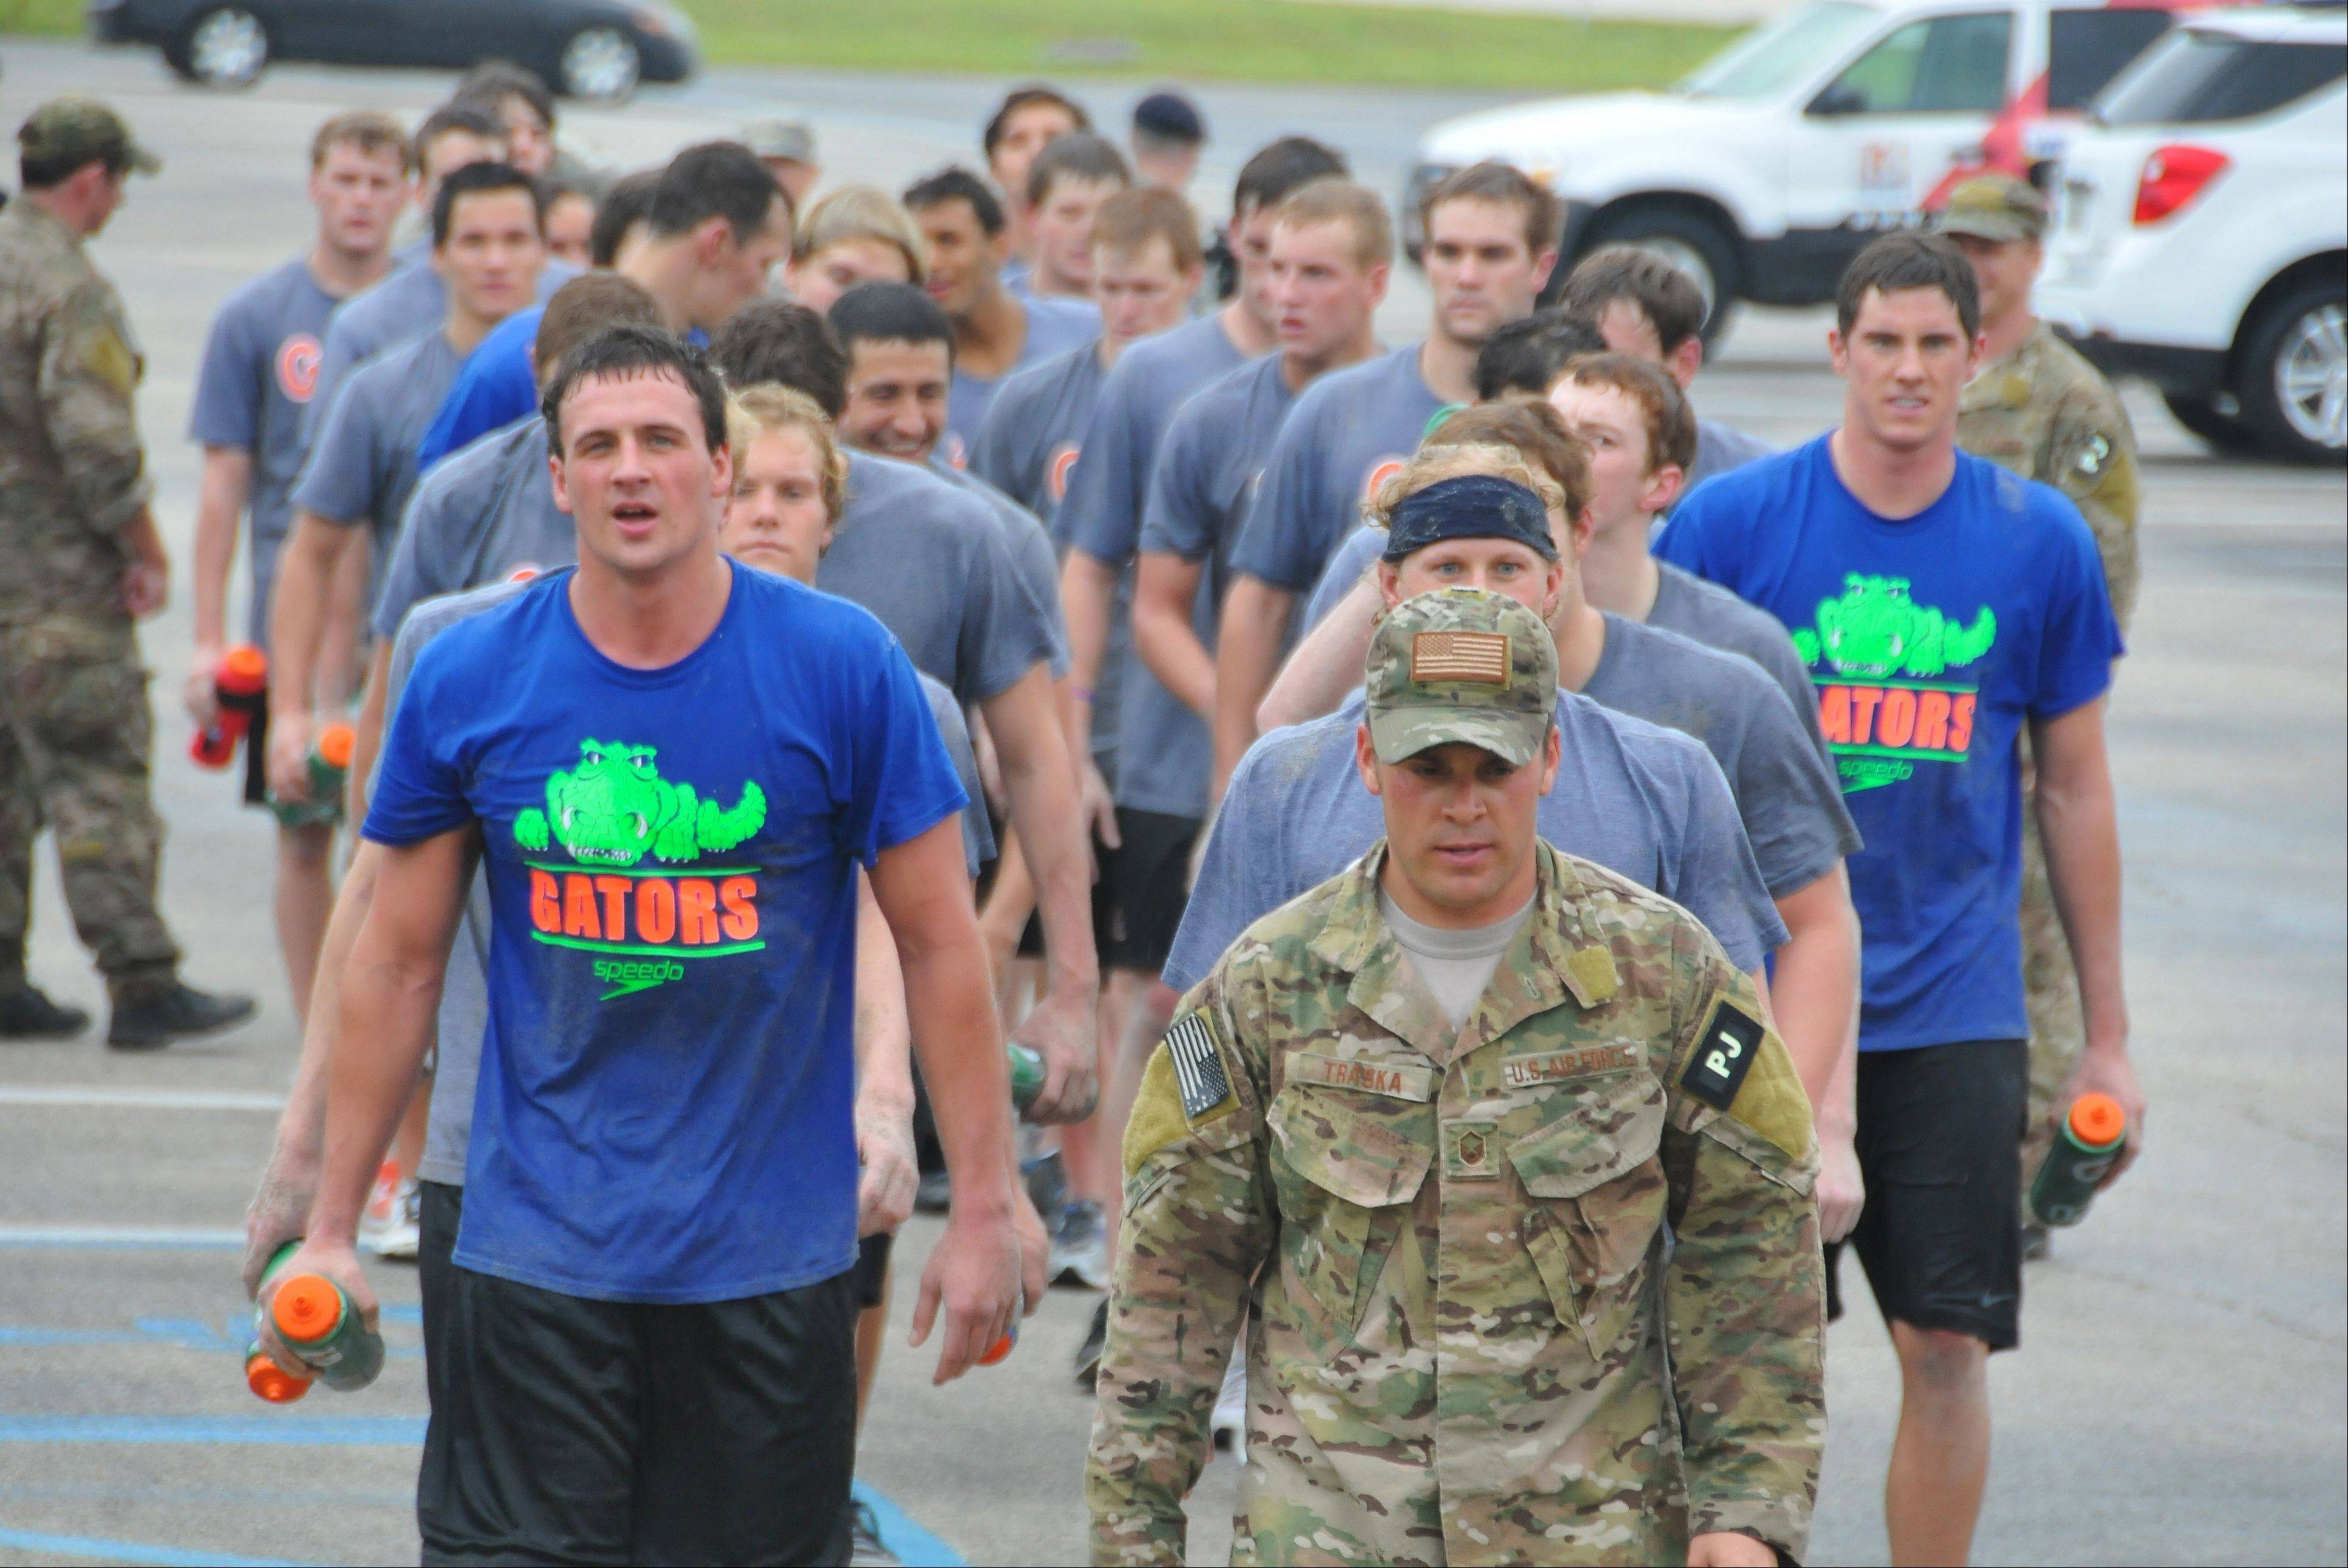 Olympic gold medalists Ryan Lochte, front left, and Conor Dwyer, wearing a Gators T-shirt at far right, and members of the University of Florida swim team workout with members of the Guardian Angels of the 920th Rescue Wing at Patrick Air Force Base.